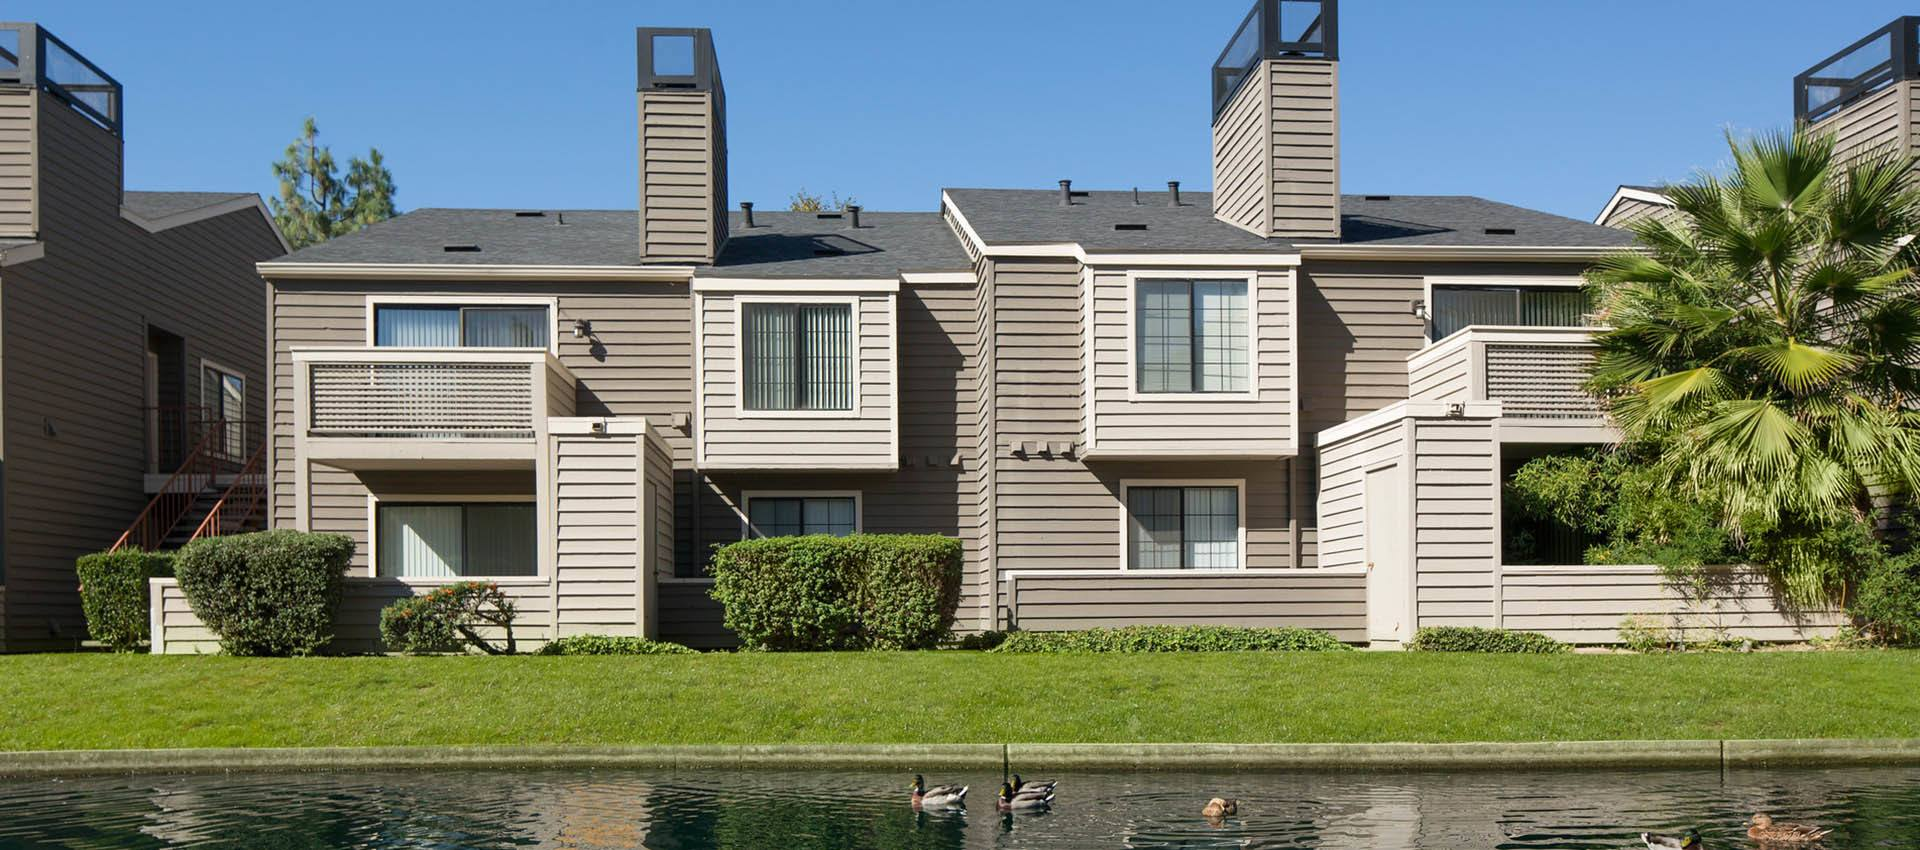 Condo Exterior Near Waterfront at Hidden Lake Condominium Rentals in Sacramento, California